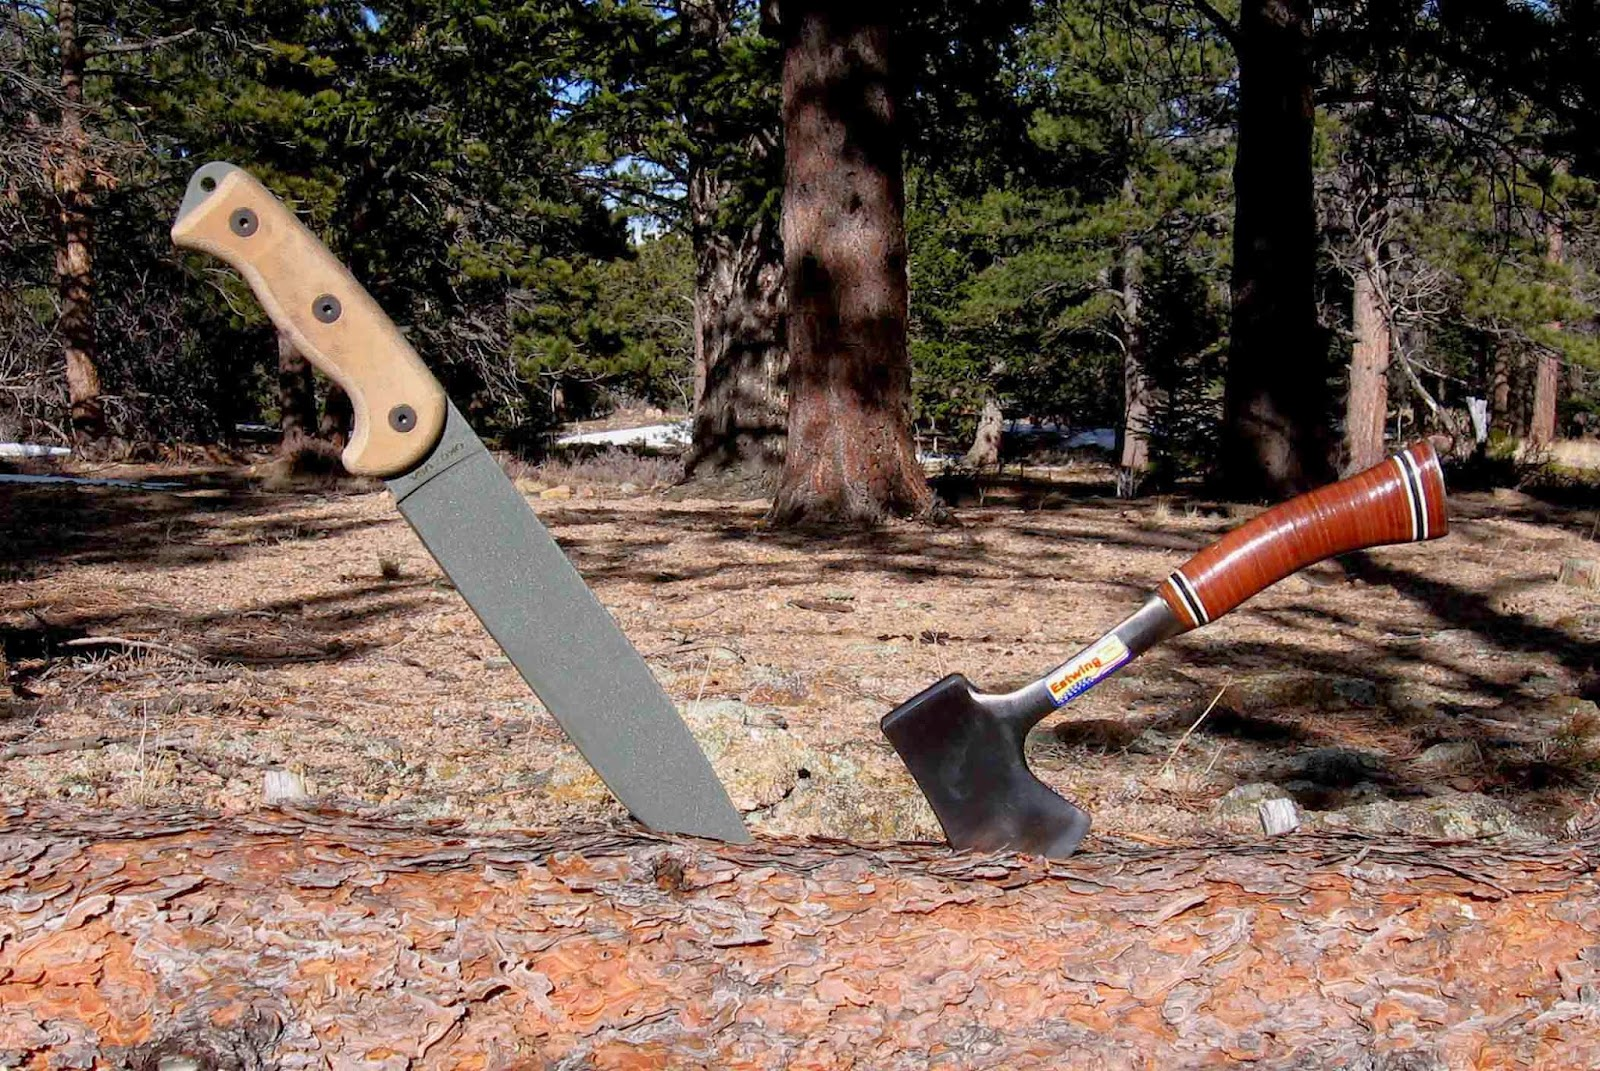 Rocky mountain bushcraft shot show 2014 first impression review - Rocky Mountain Bushcraft Pits A Popular Knife Against A Popular Hatchet To Decide An Age Old Question Which Tool Is The Better Chopper